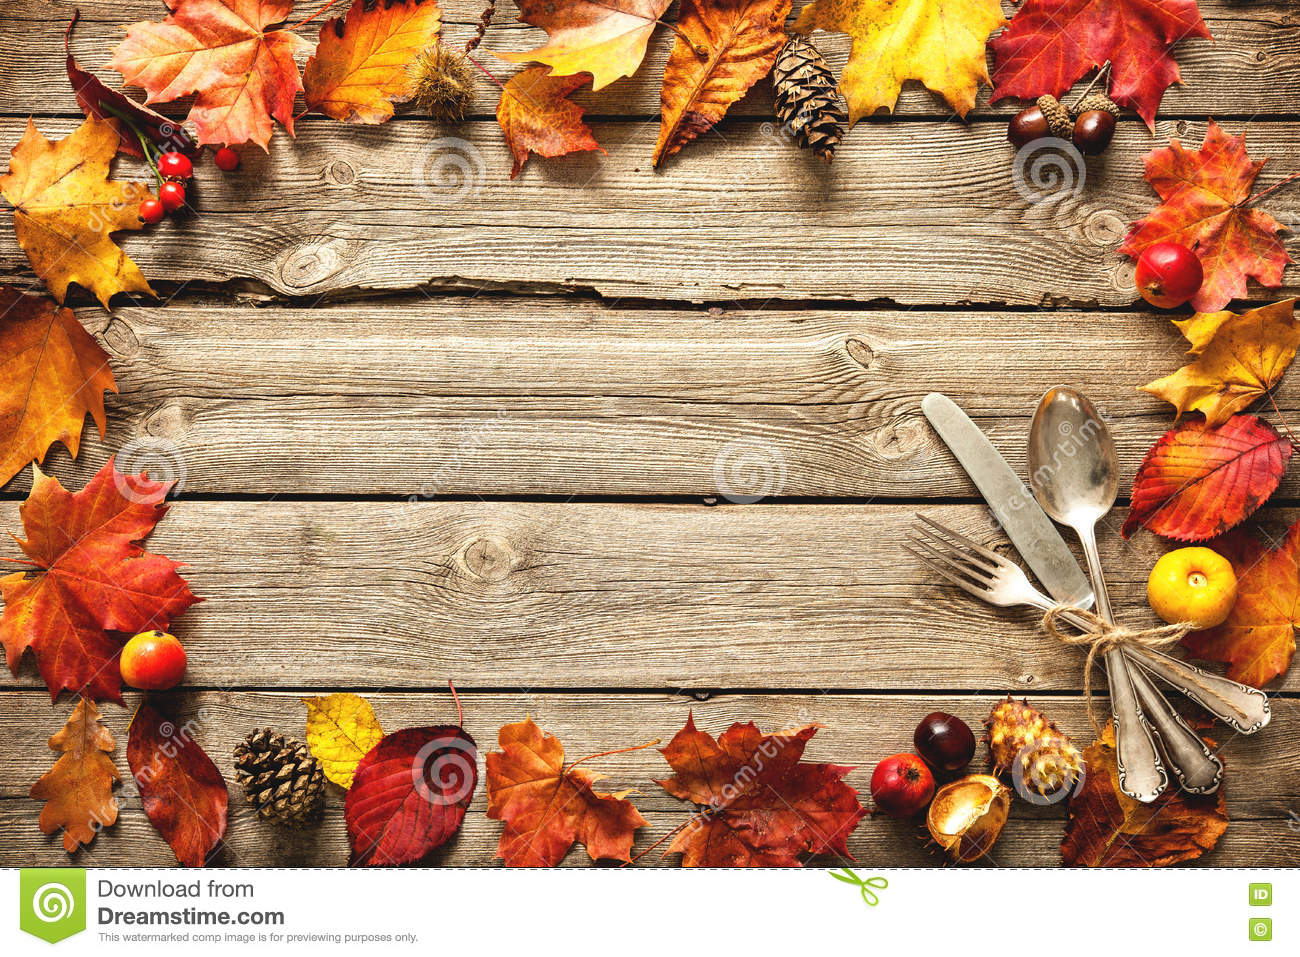 Fall Leaves Desktop Wallpaper Backgrouns Thanksgiving Autumn Background With The Vintage Silverware